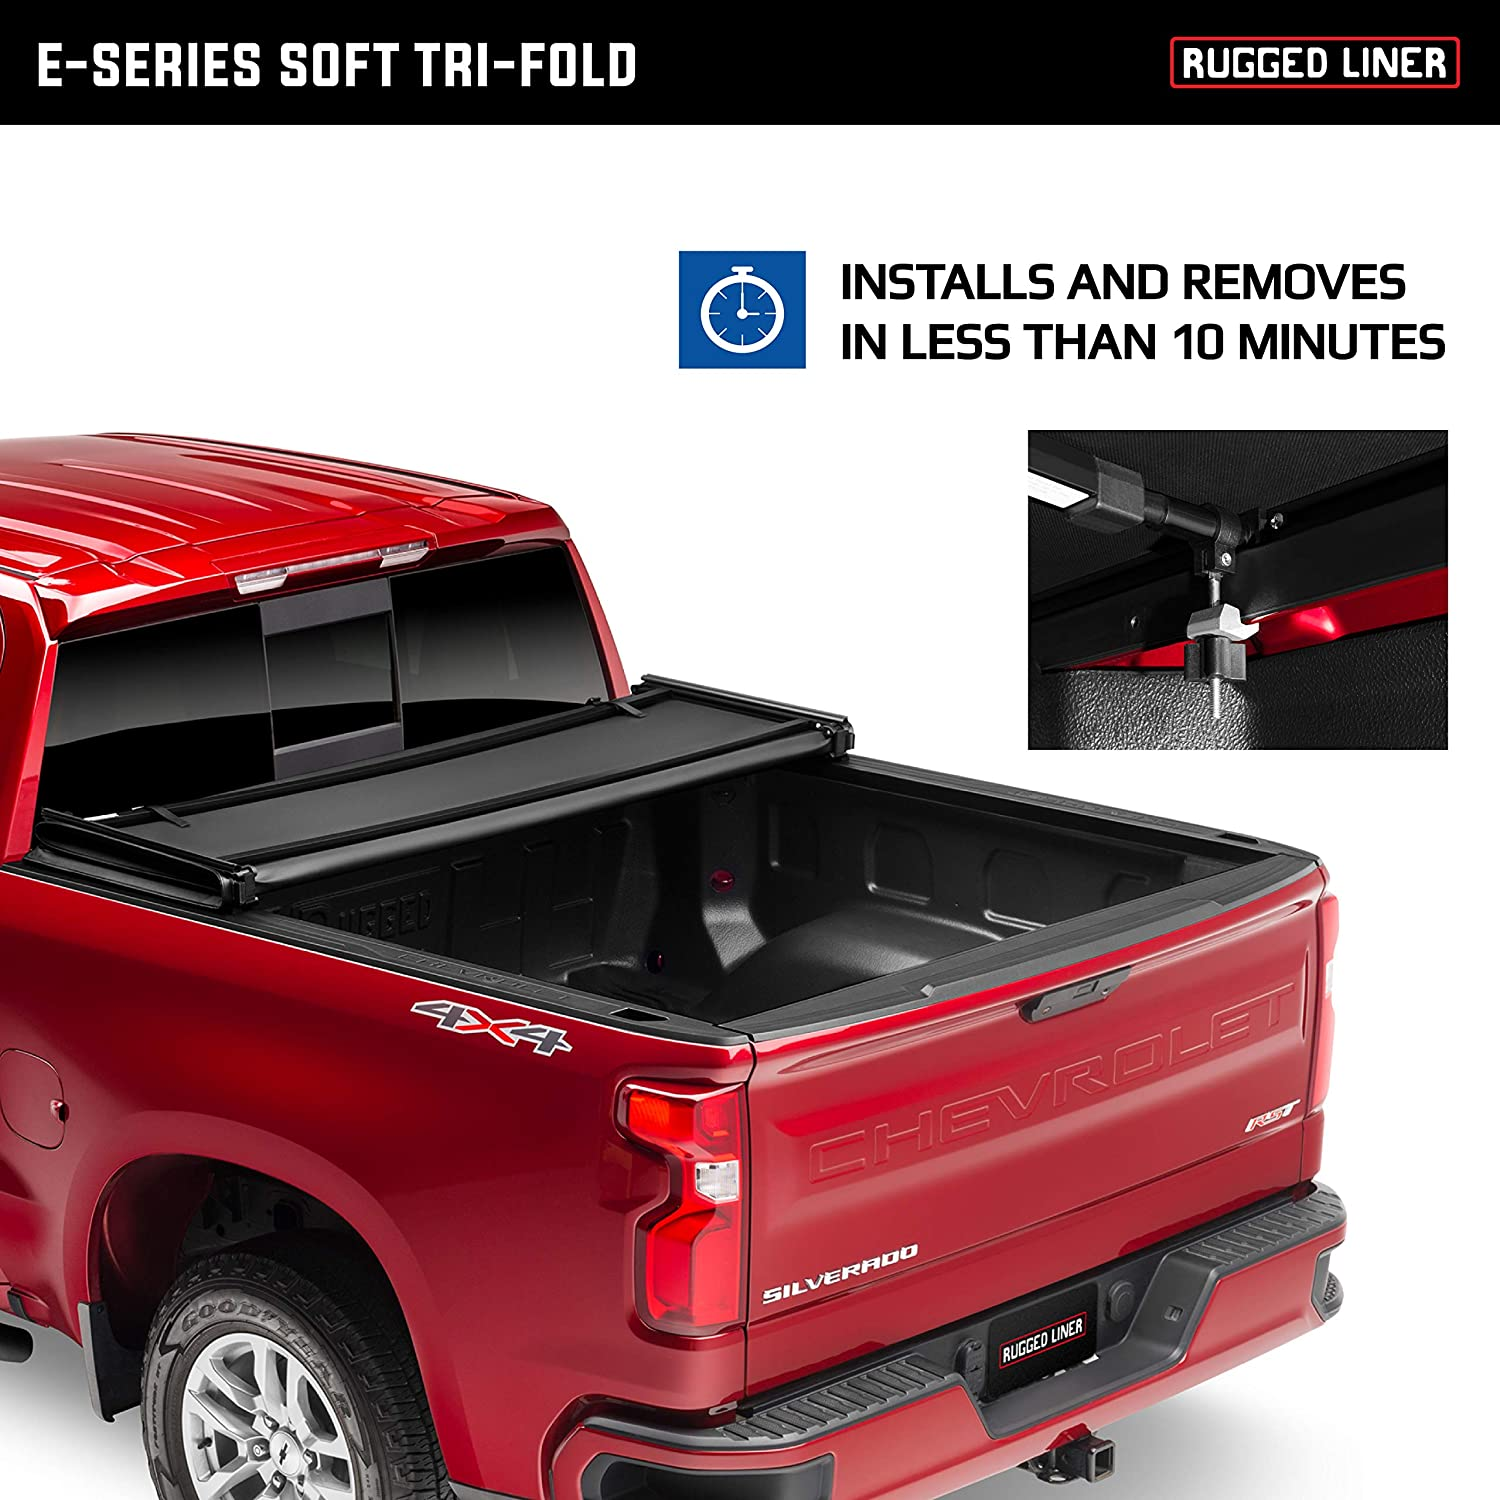 Eh F5509 Rugged Liner E Series Hard Folding Truck Bed Tonneau Cover Fits 2009 2014 Ford F 150 5 5 Bed Automotive Tonneau Covers